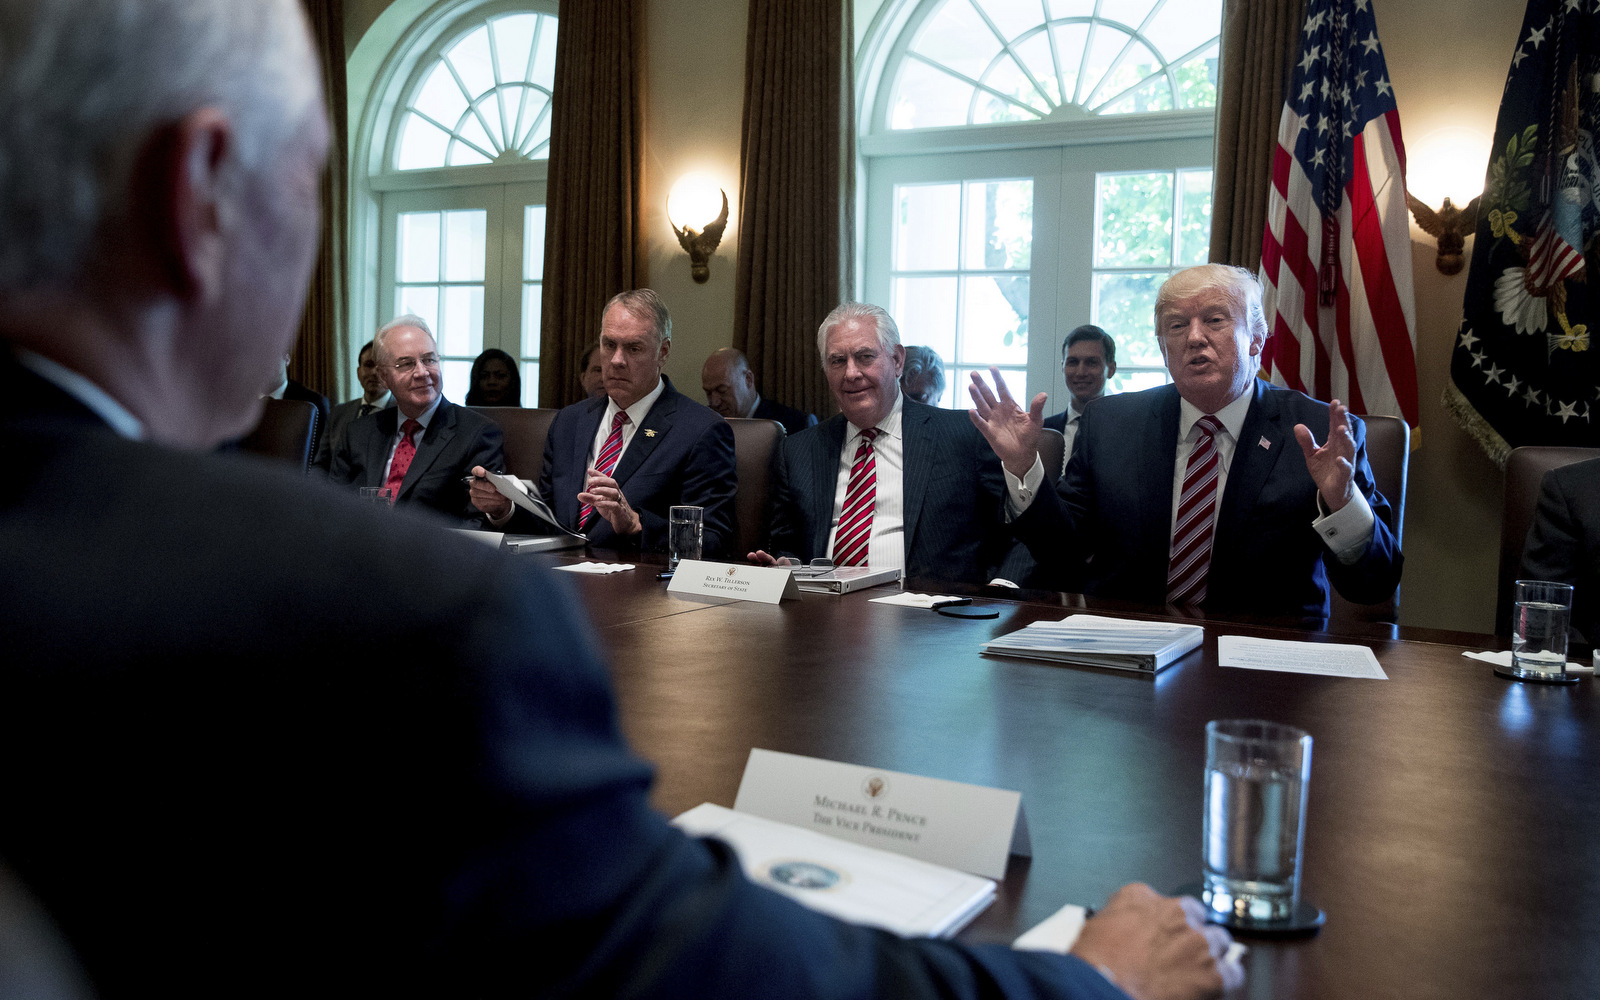 Flanked by former Exxon executive, now Secretary of State Rex Tillerson, President Donald Trump speaks during a cabinet meeting., June 12, 2017. (AP/Andrew Harnik)